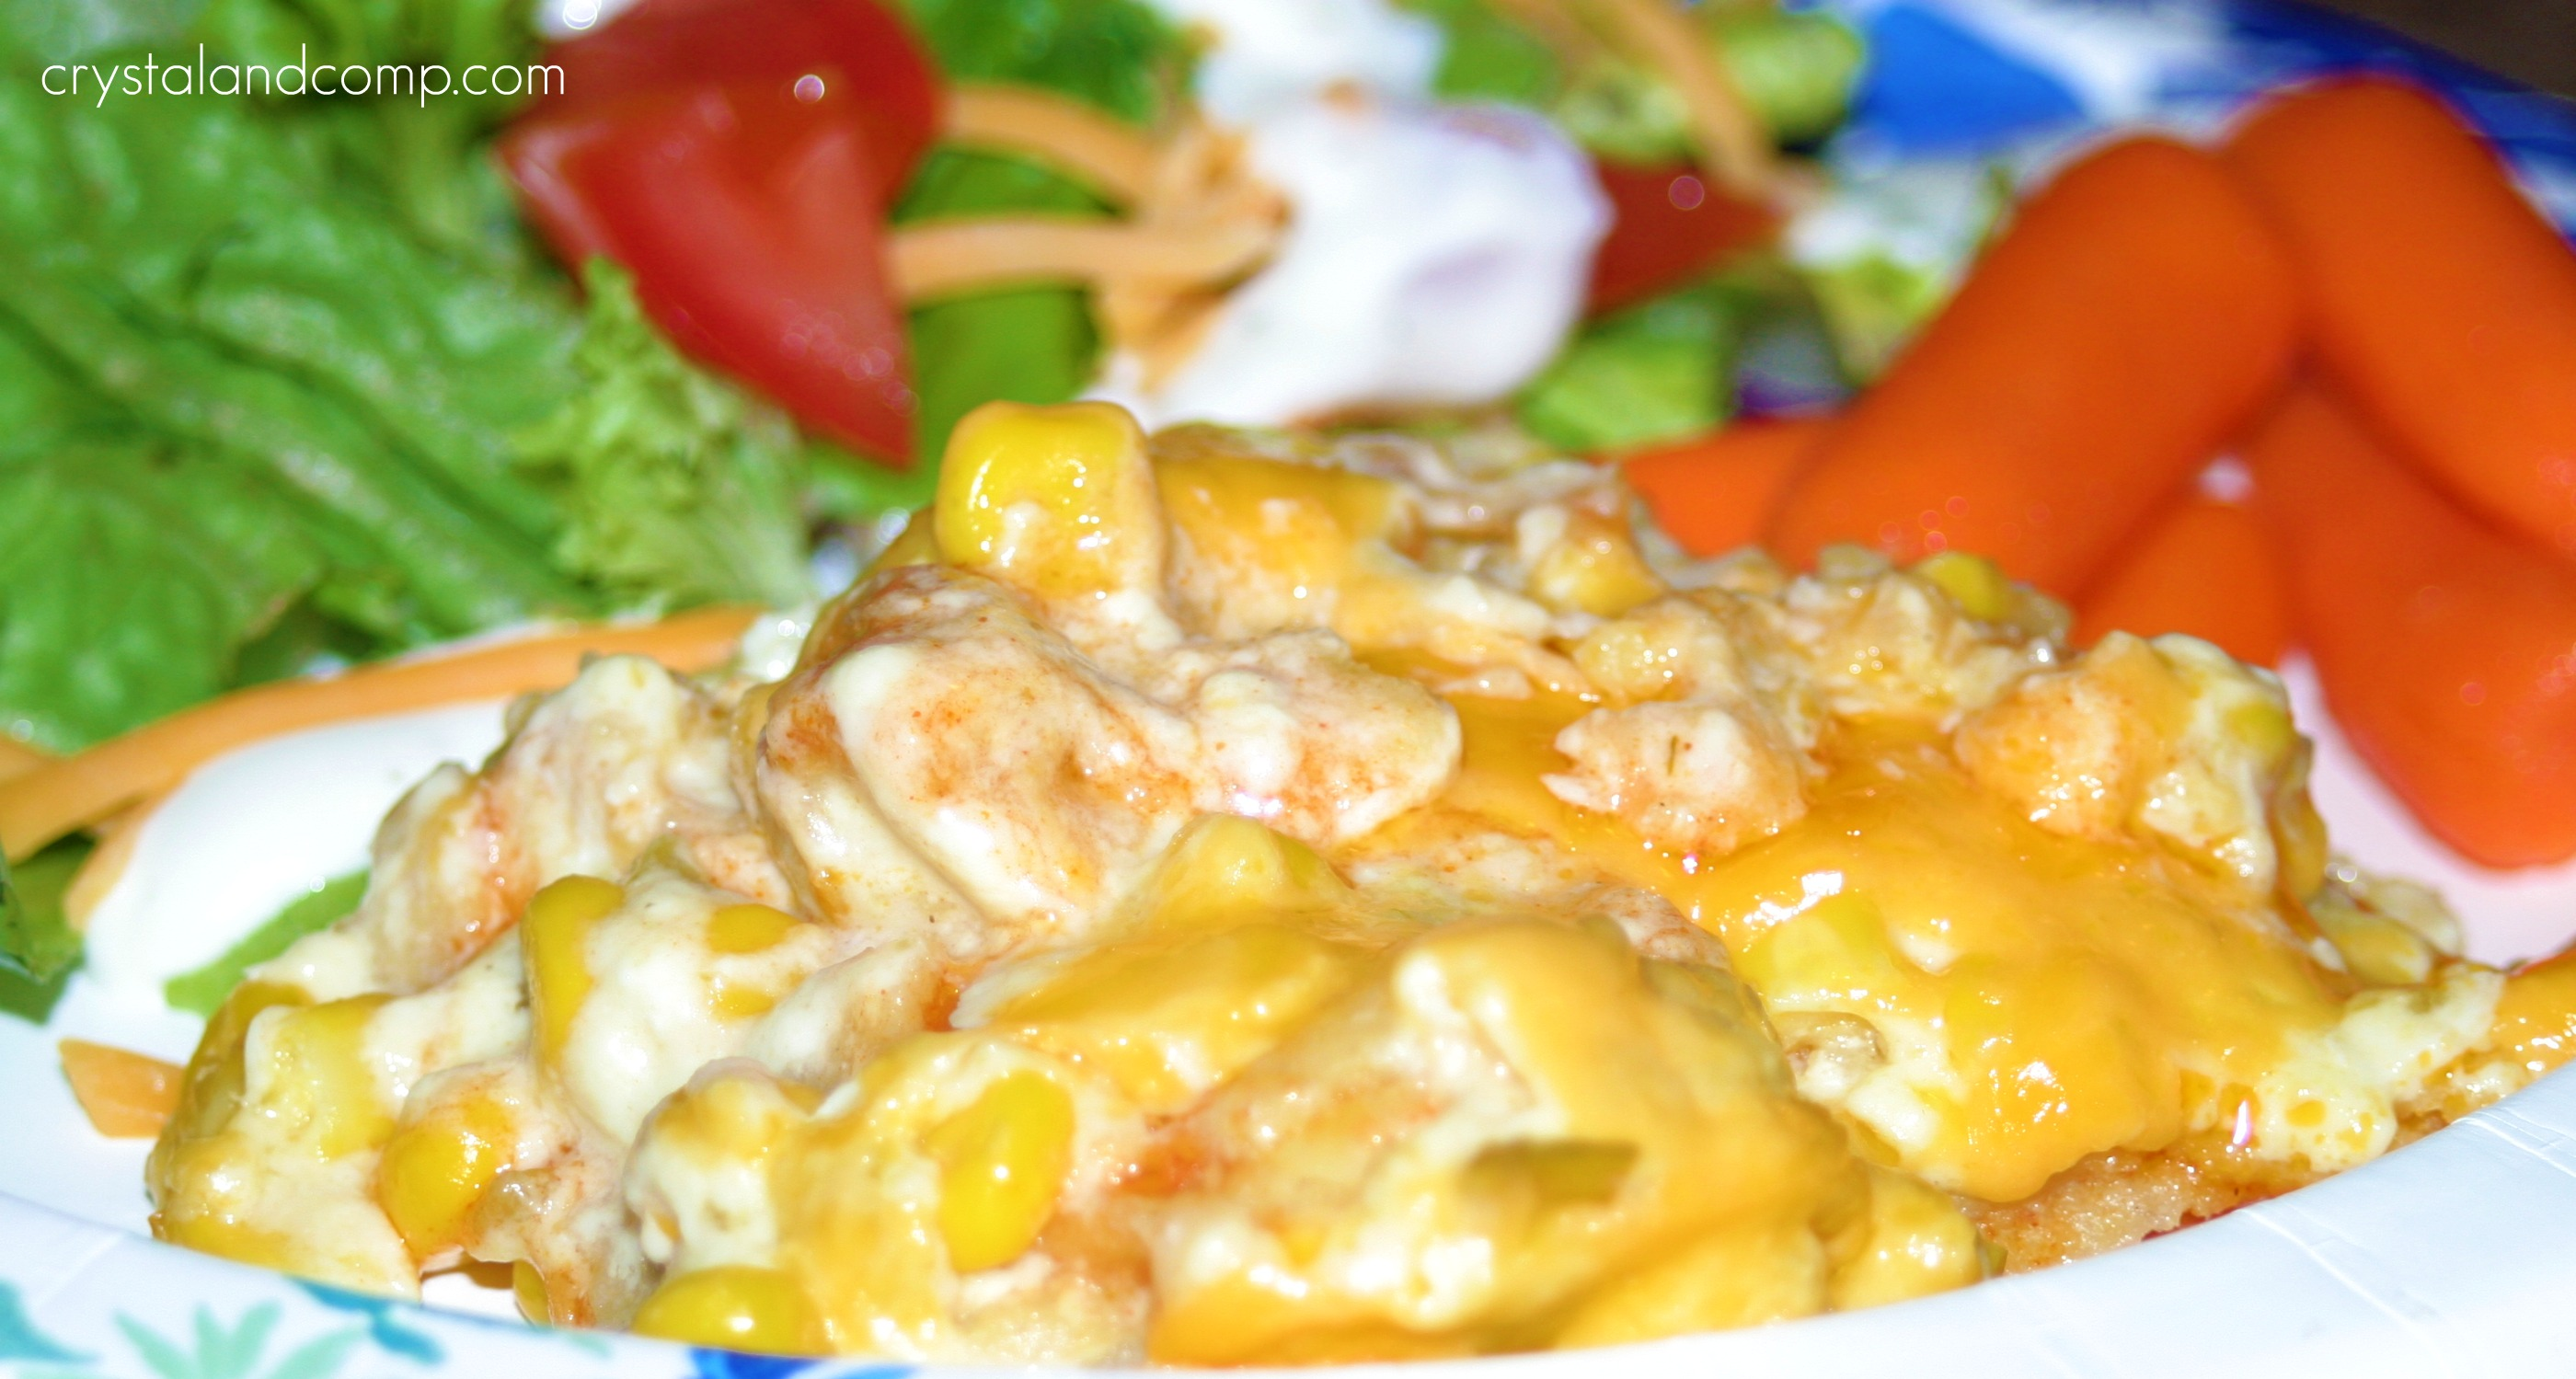 Crockpot Chicken Enchilada Casserole